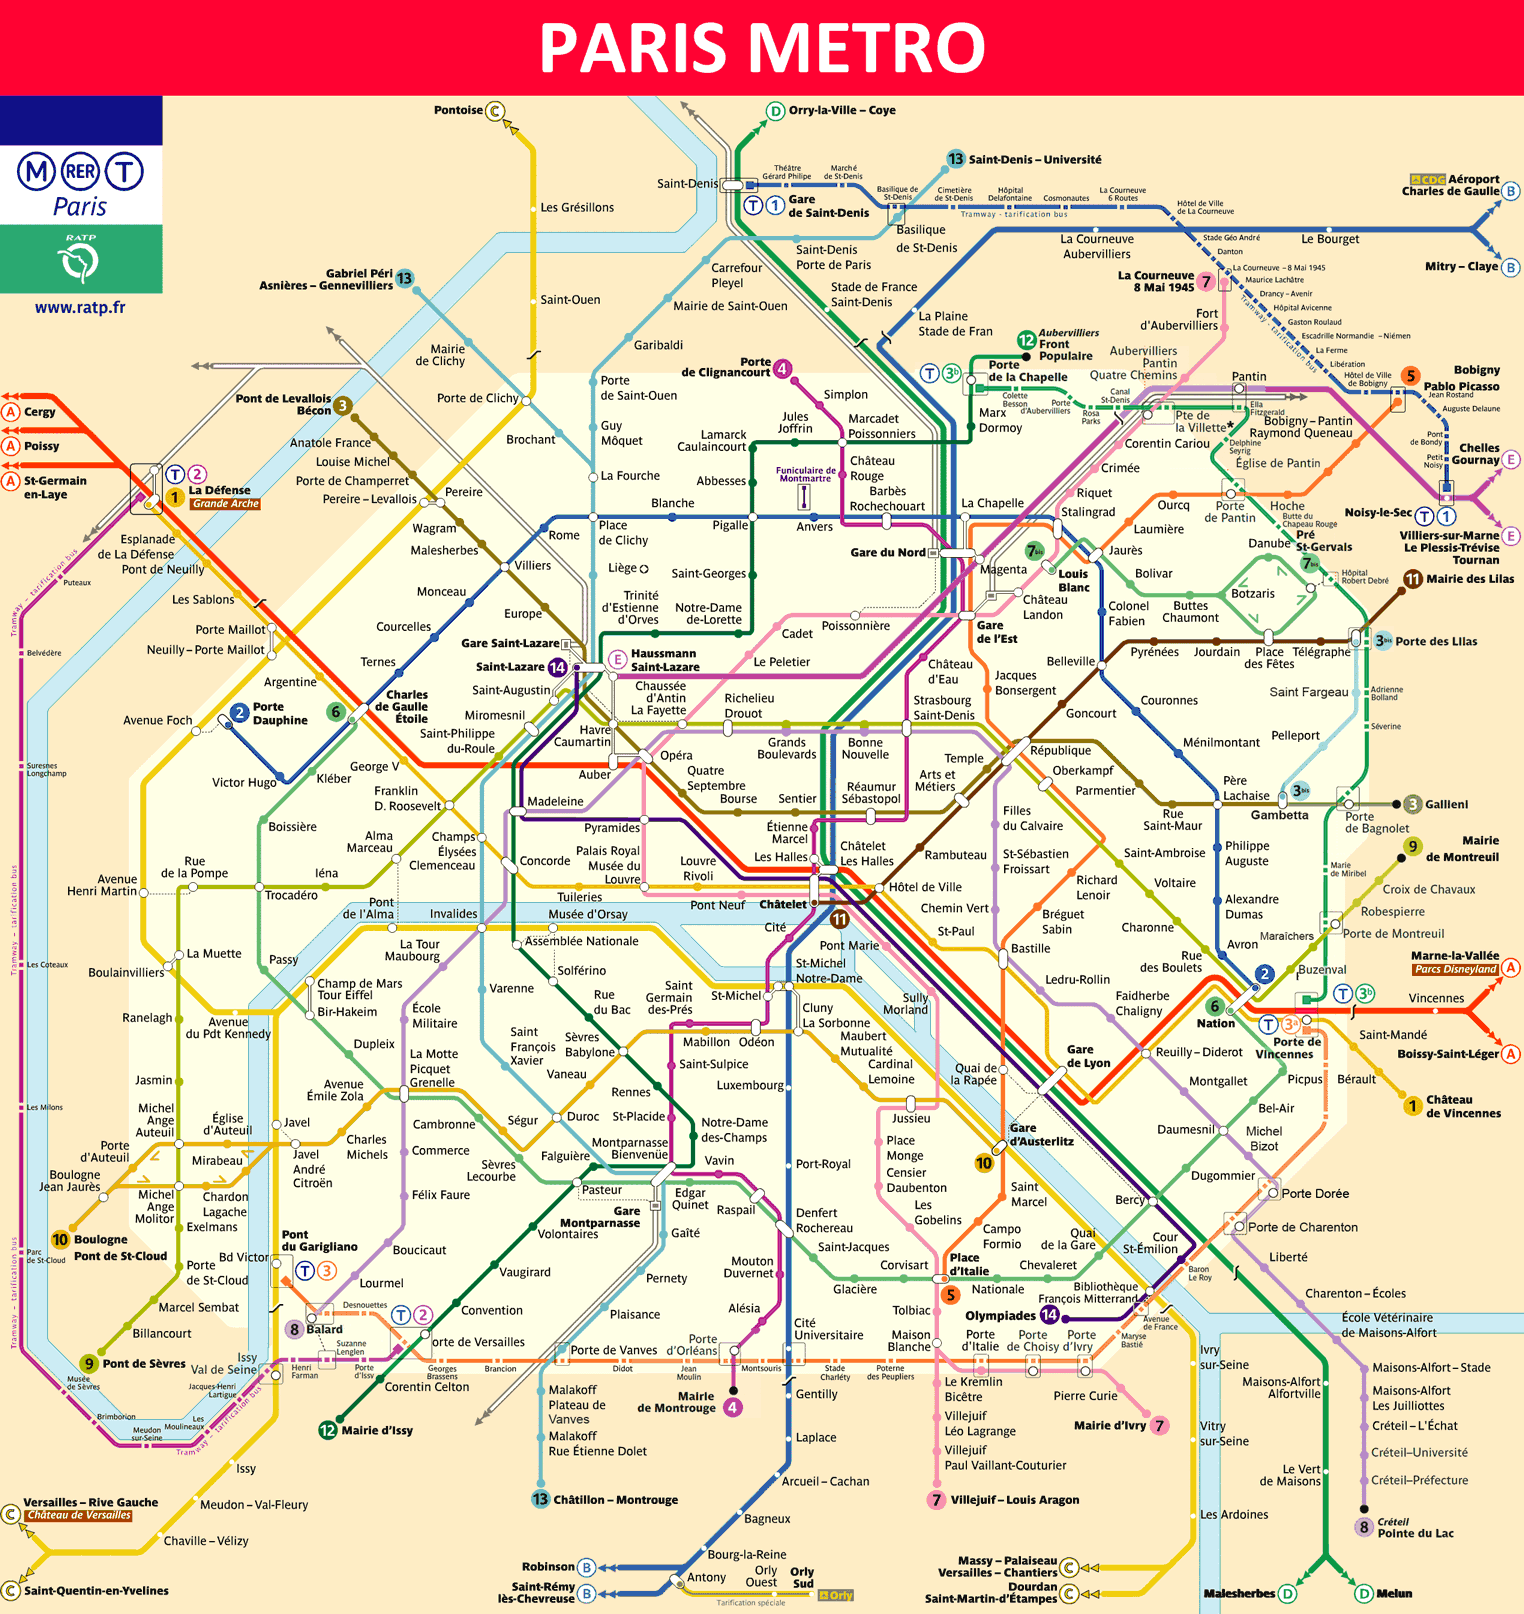 Paris Metro - Maps, Timetables, Tourist Information